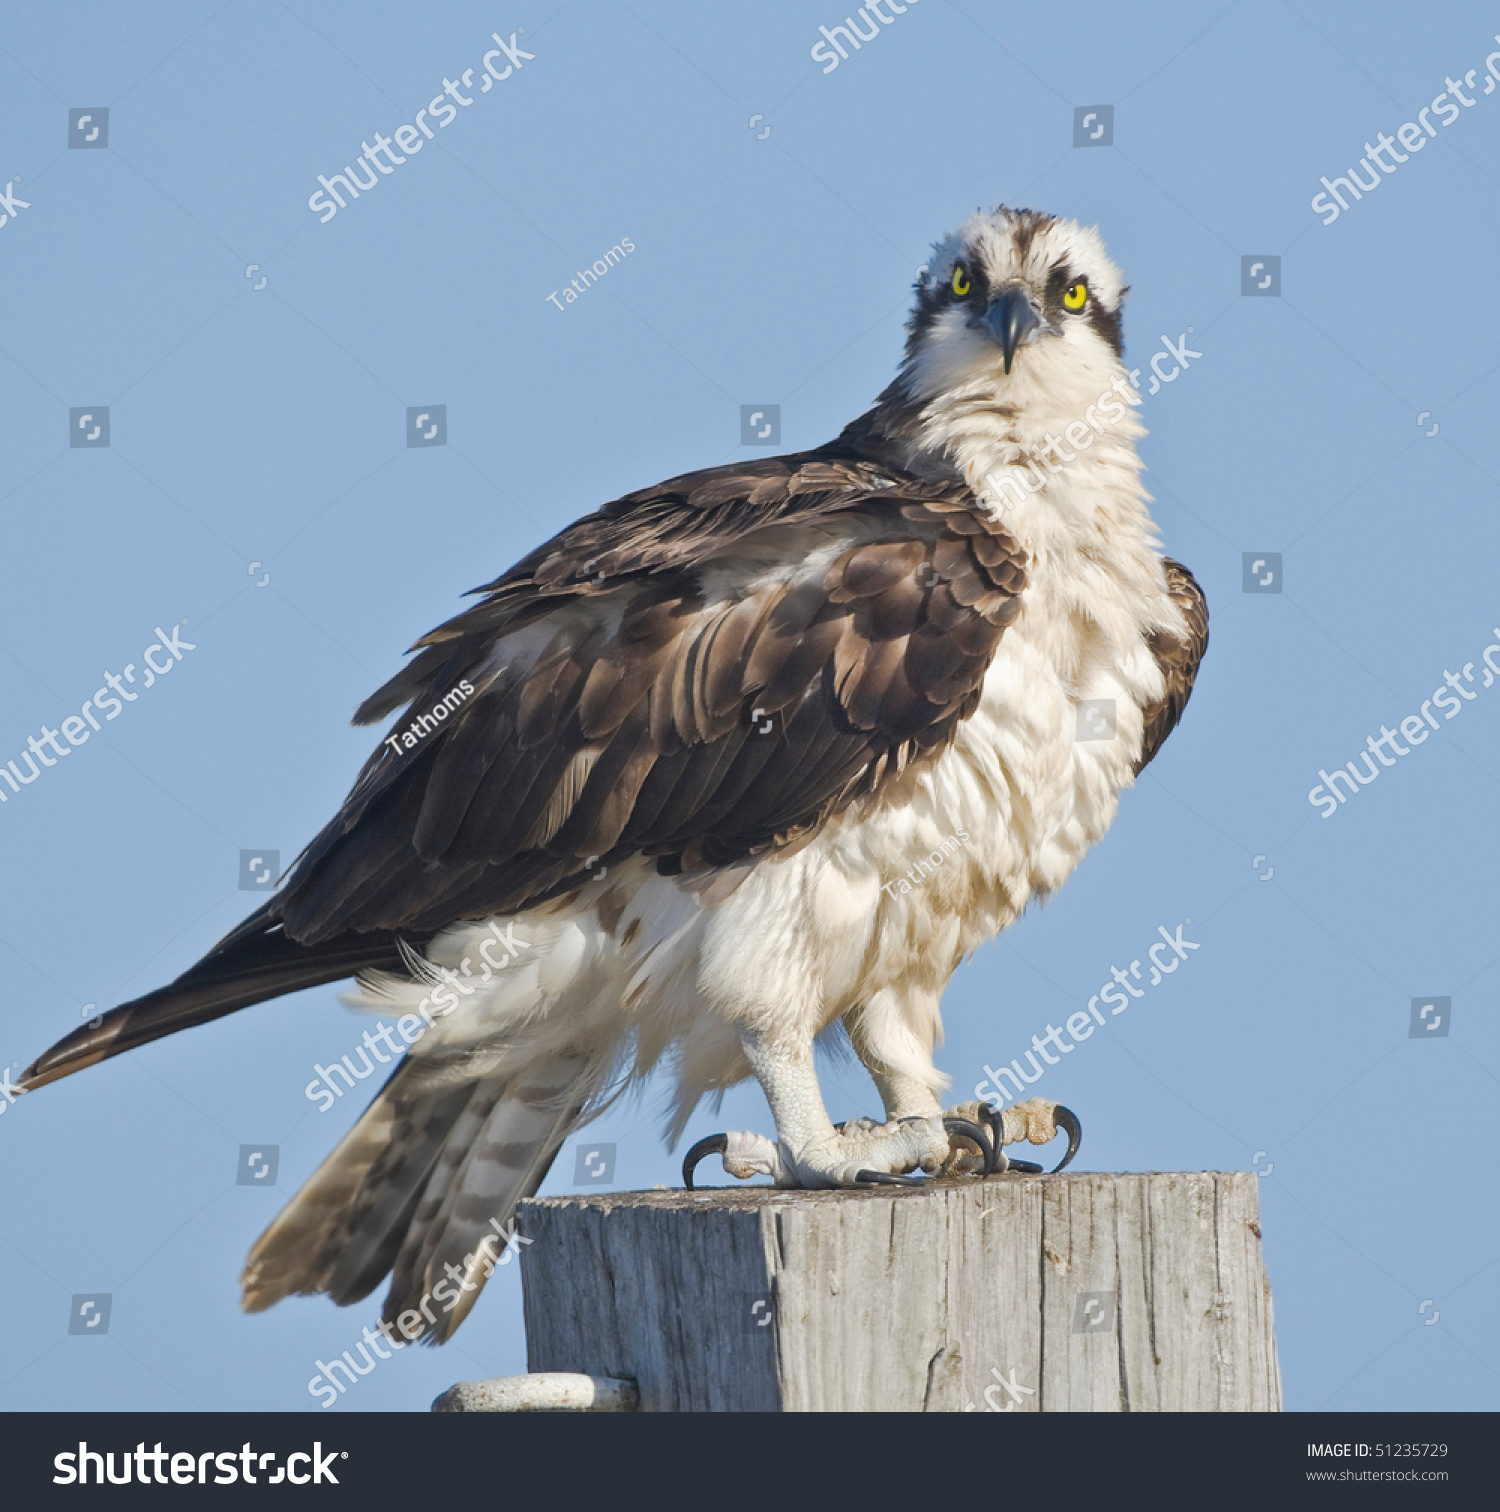 Osprey shaking, getting fluffy, ruffles his feathers after lunch. Pandion haliaetus.